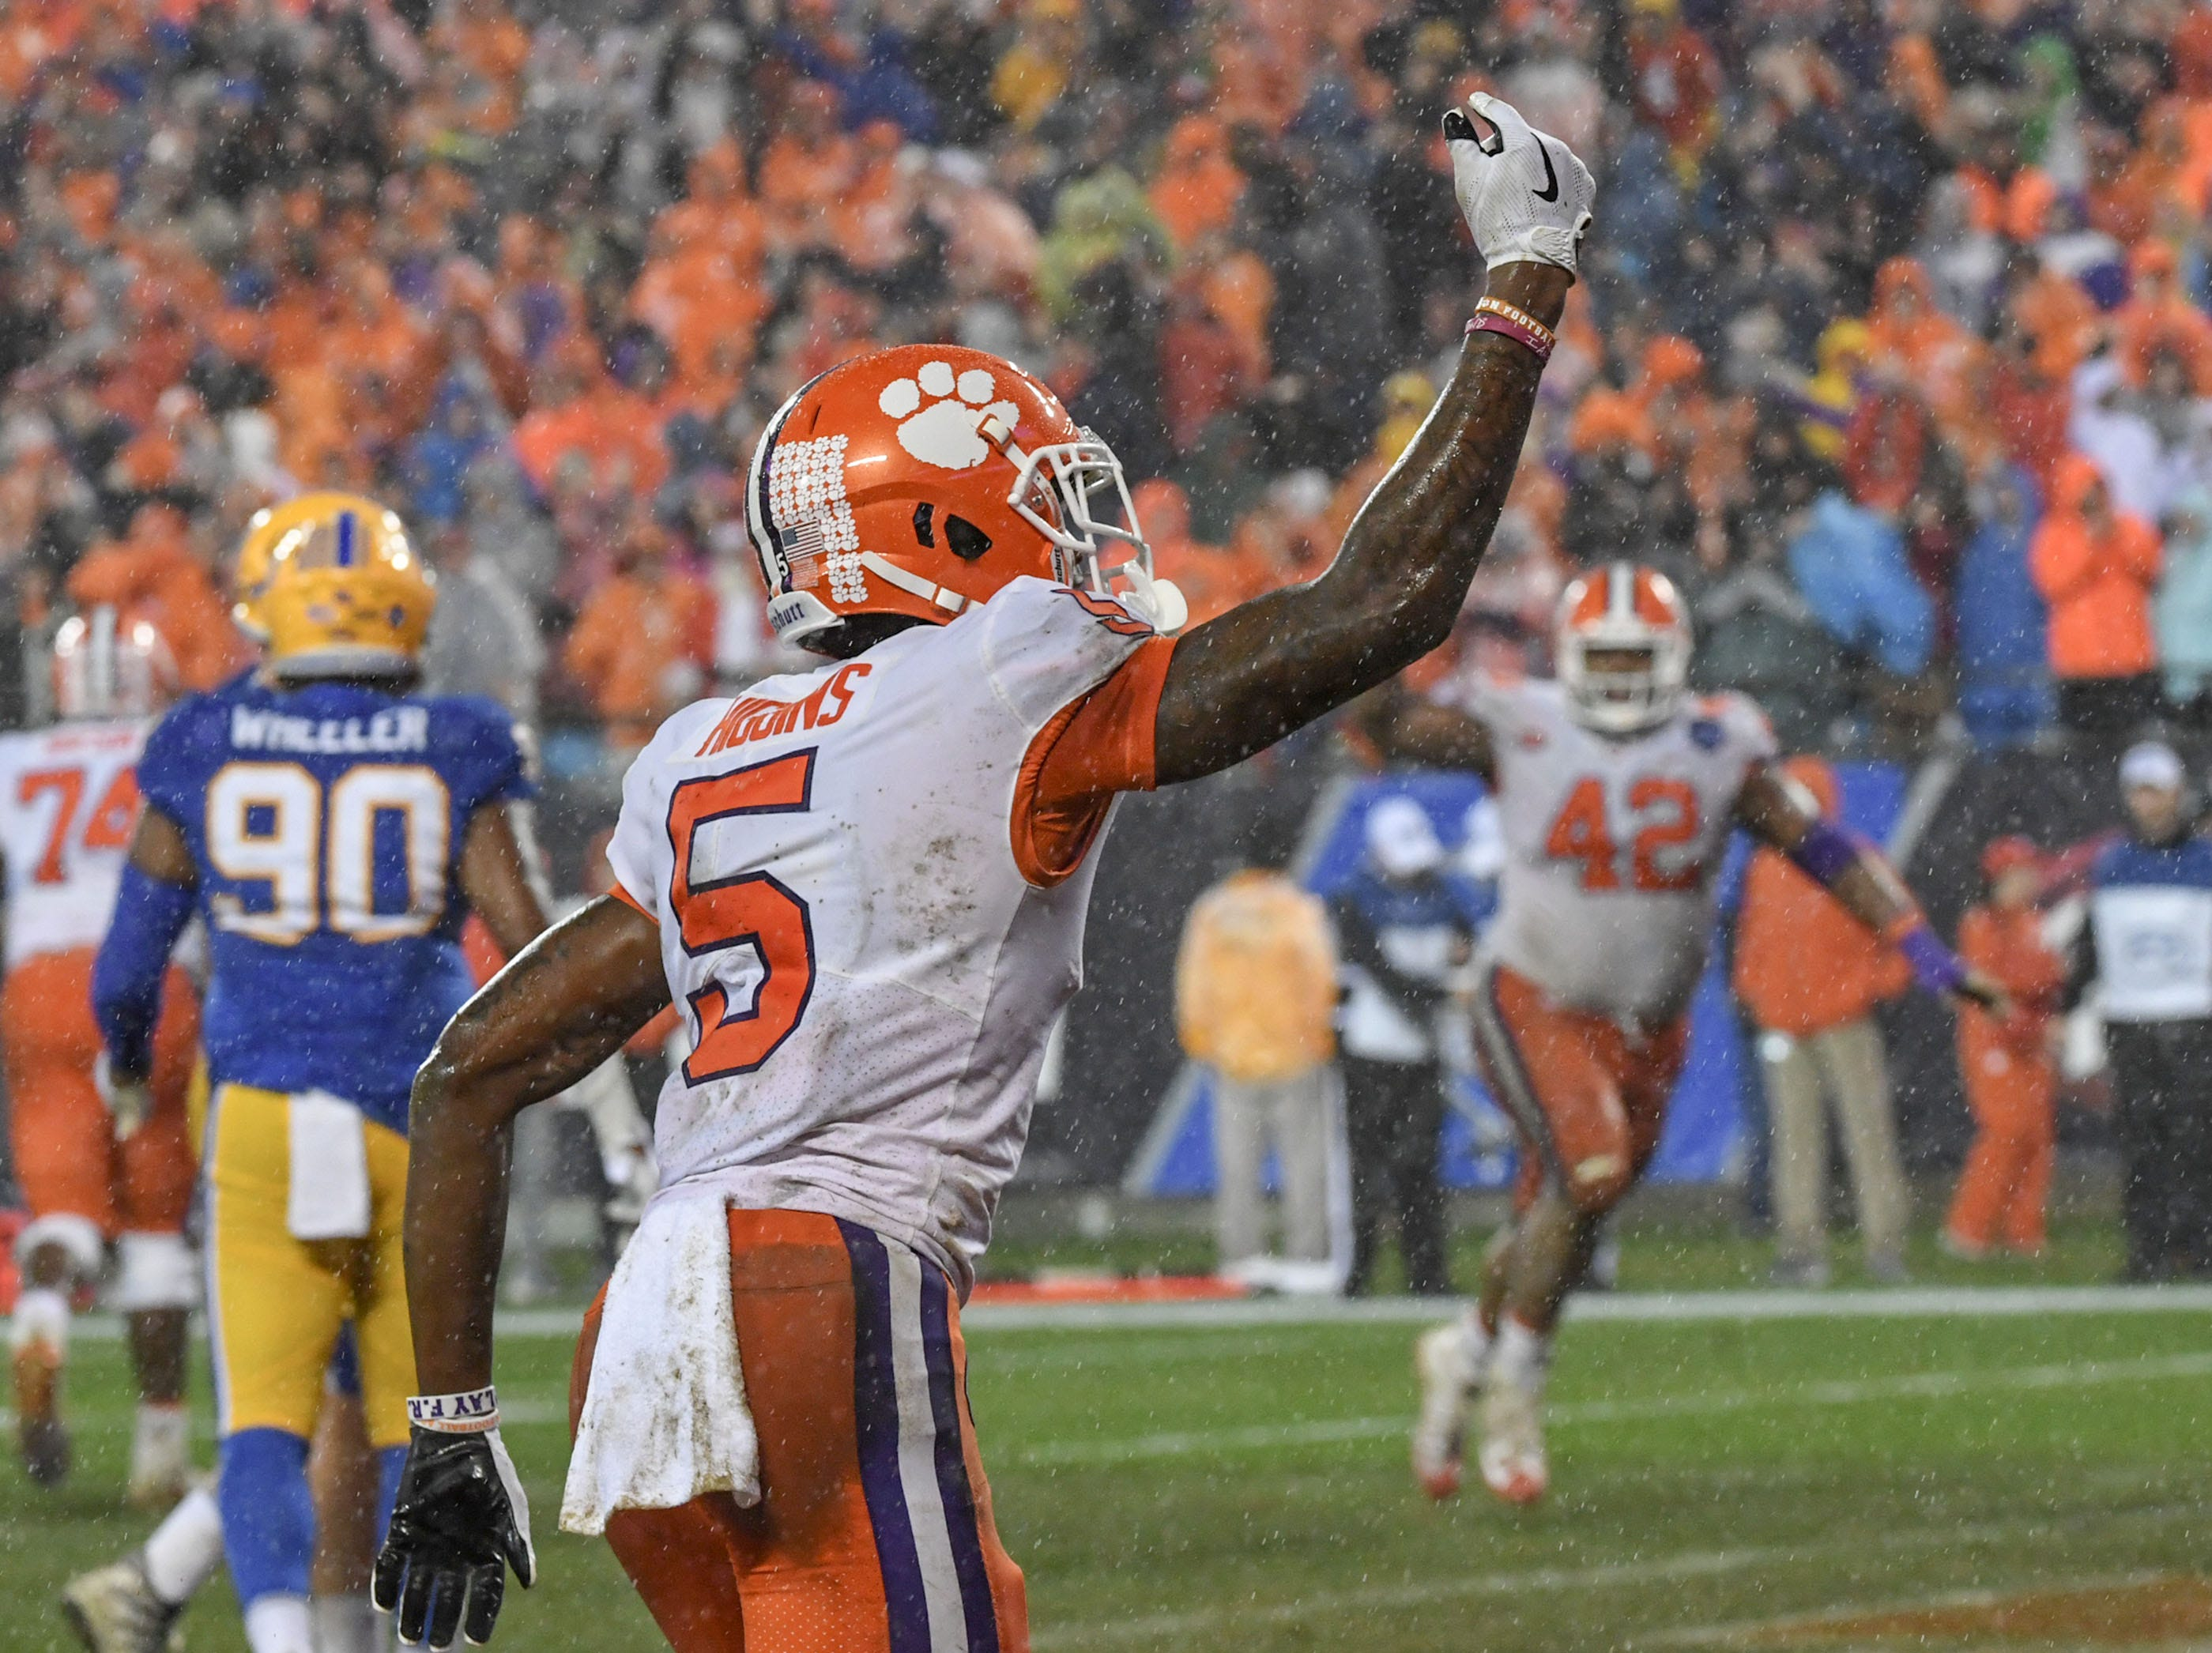 Clemson wide receiver Tee Higgins (5) reacts after catching a touchdown against Pittsburgh during the second quarter of the Dr. Pepper ACC football championship at Bank of America Stadium in Charlotte, N.C. on Saturday, December 1, 2018.